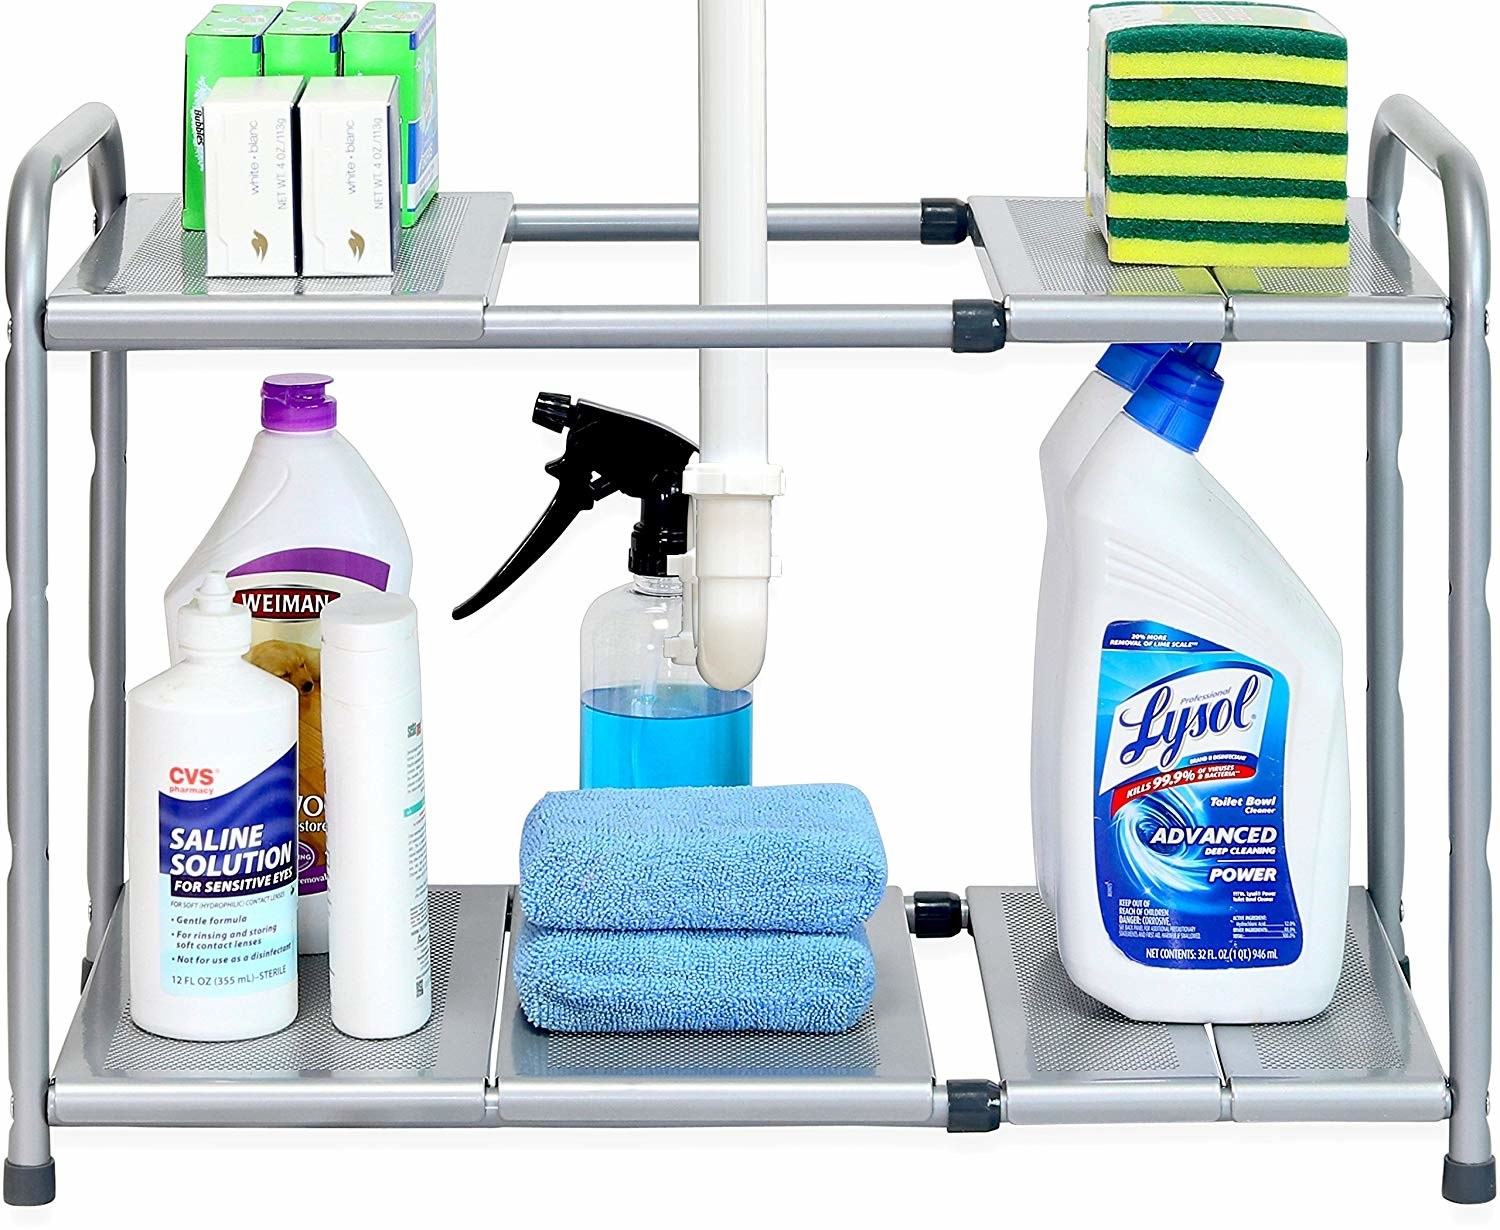 """Promising review: """"Before I got this, the cabinet under my kitchen sink was an absolute mess. All the cleaning supplies were piled on top of each other; there were empty grocery store bags everywhere. I would have to dive in there in order to find anything. As soon as I got this shelf my cabinet made a turnaround. The shelf was extremely easy to set up, although you have to get in there in order to get the sink pipes between the shelf tubes, but it was nothing. The skeleton of the shelf is expandable and fit my cabinet perfectly. You can also adapt the height of the shelves to your liking or needs. I personally set it up so that the shelves would be at the very top and at the very bottom of the unit. The height between shelves is perfect for tall cleaning spray bottles and whatever you want to put there. It definitely is the best organizer for places where there are pesky pipes in the way that use up valuable space."""" —Ro2xGet it from Amazon for $22.87."""